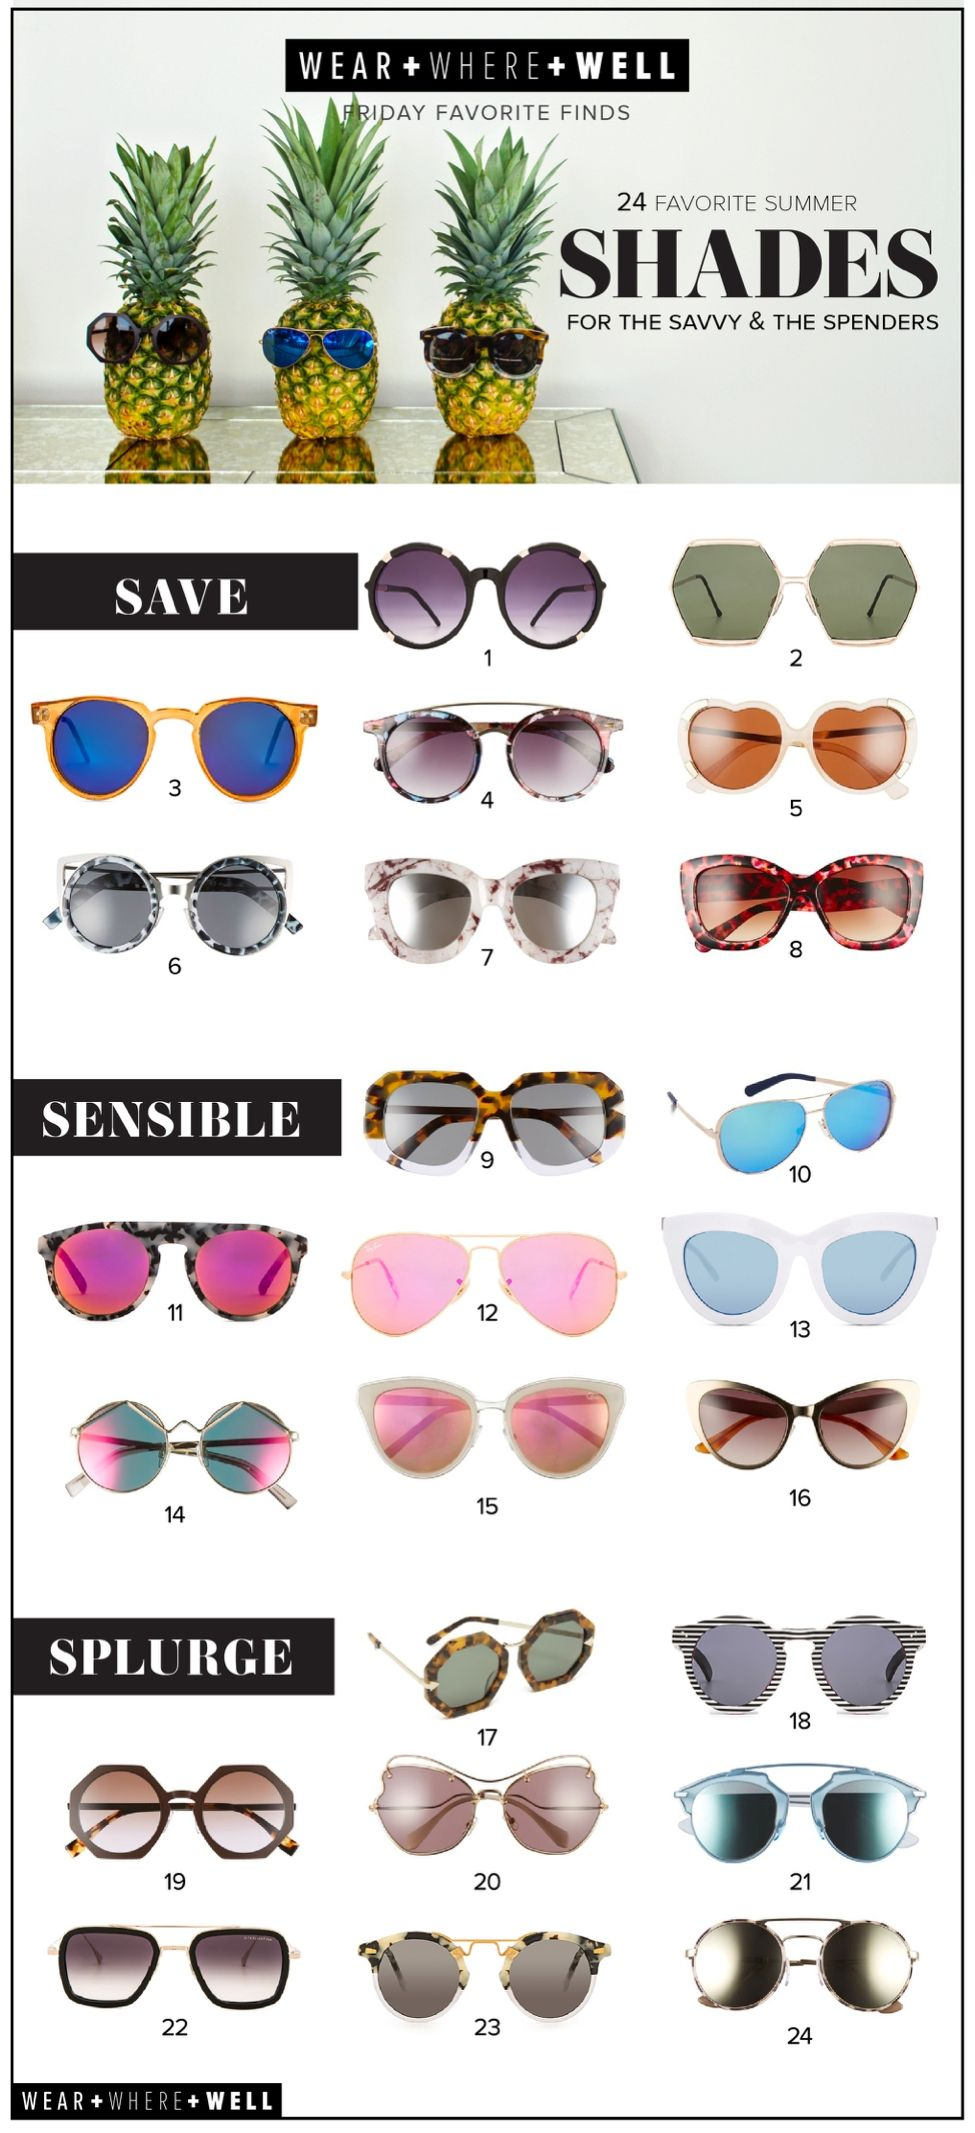 88f0c18dee Wear + Where + Well   the 24 best sunglasses for any budget ...